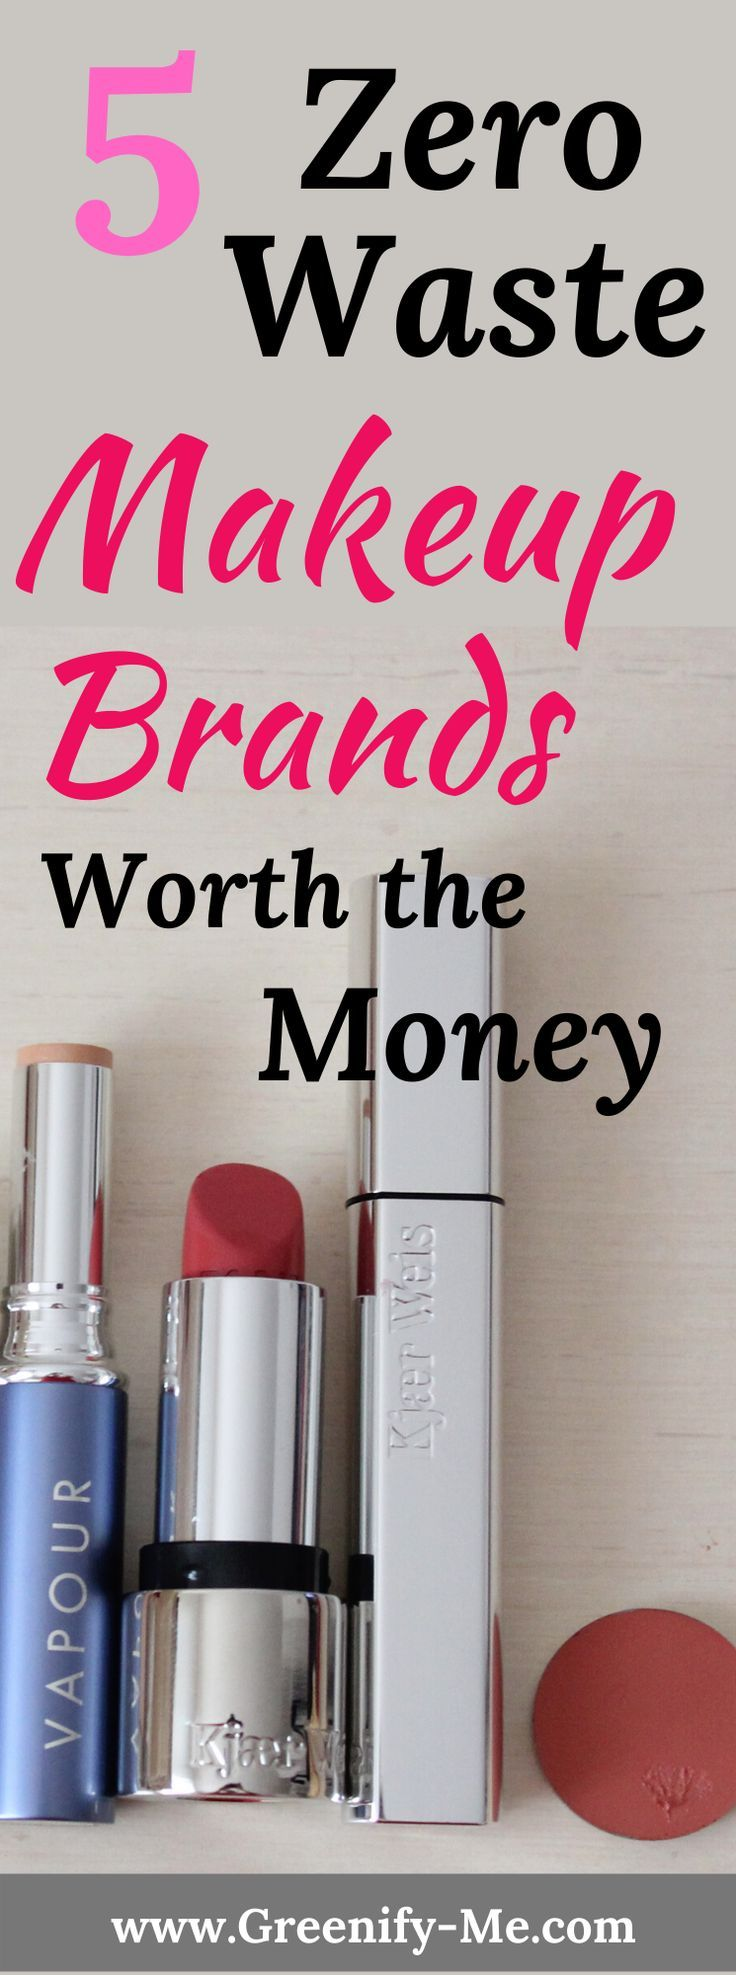 Looking for the best zero waste makeup brands? I've got